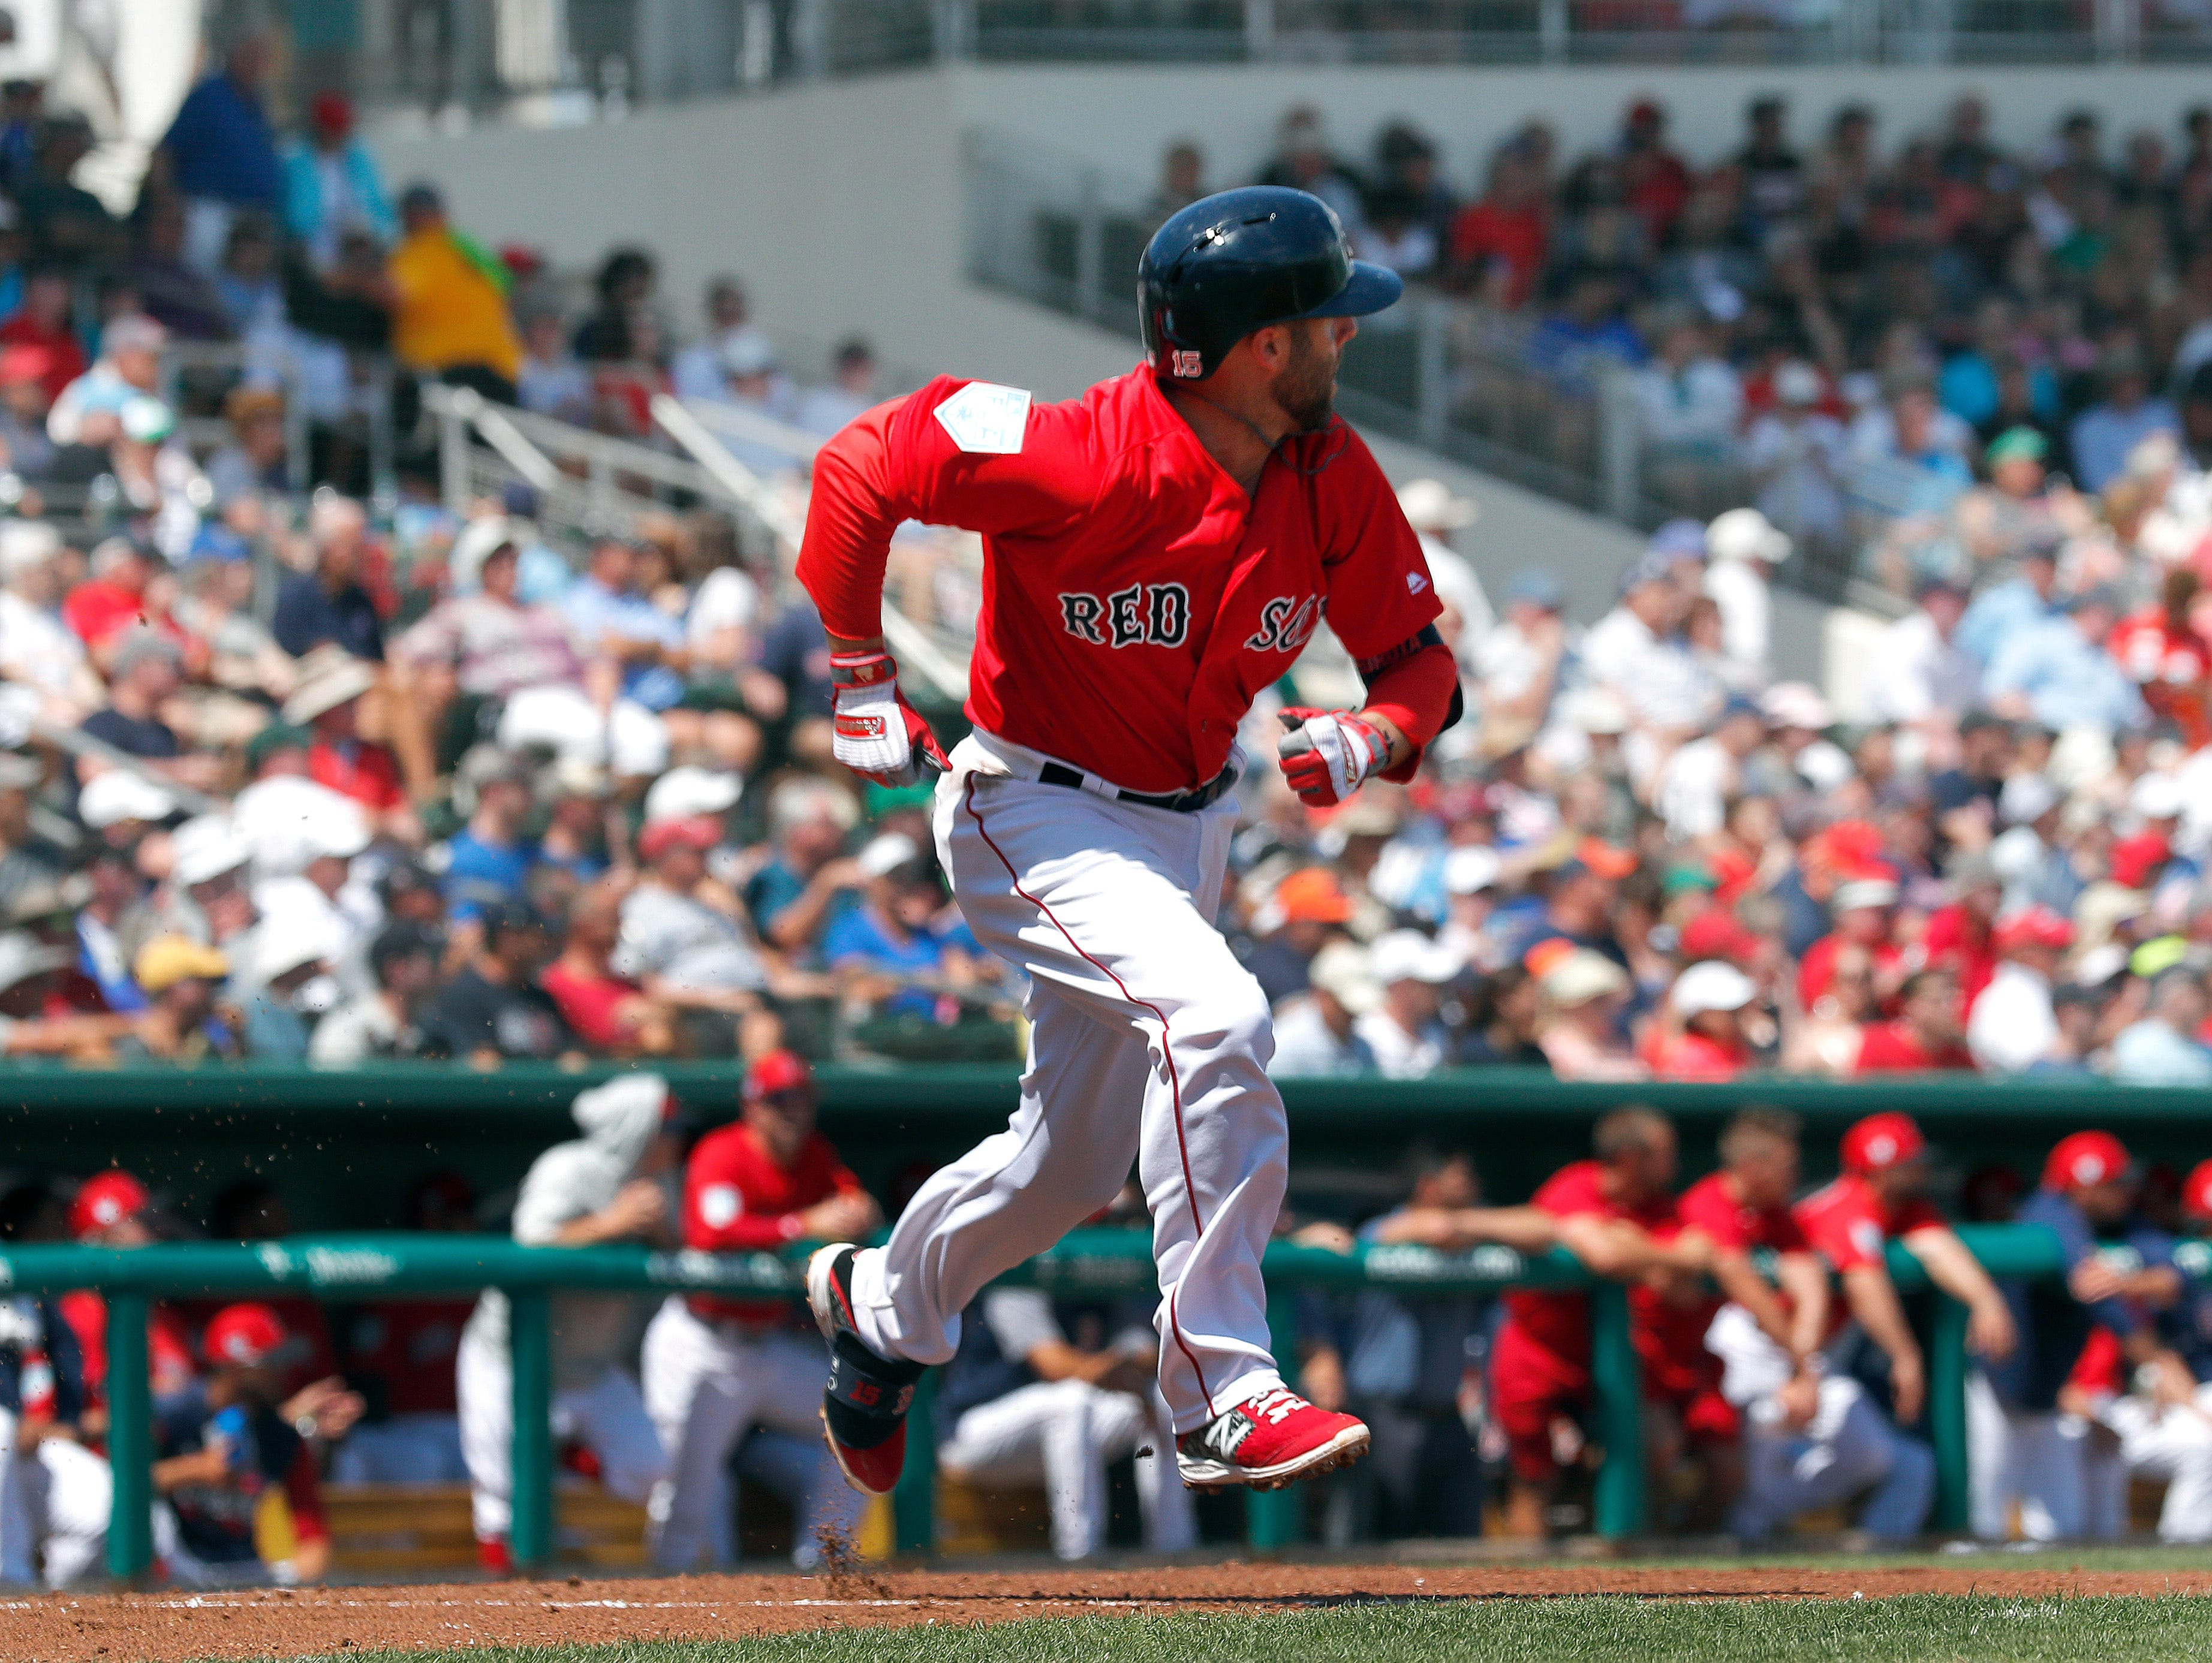 Dustin Pedroia of the Boston Red Sox runs to first with a base hit in the first inning.